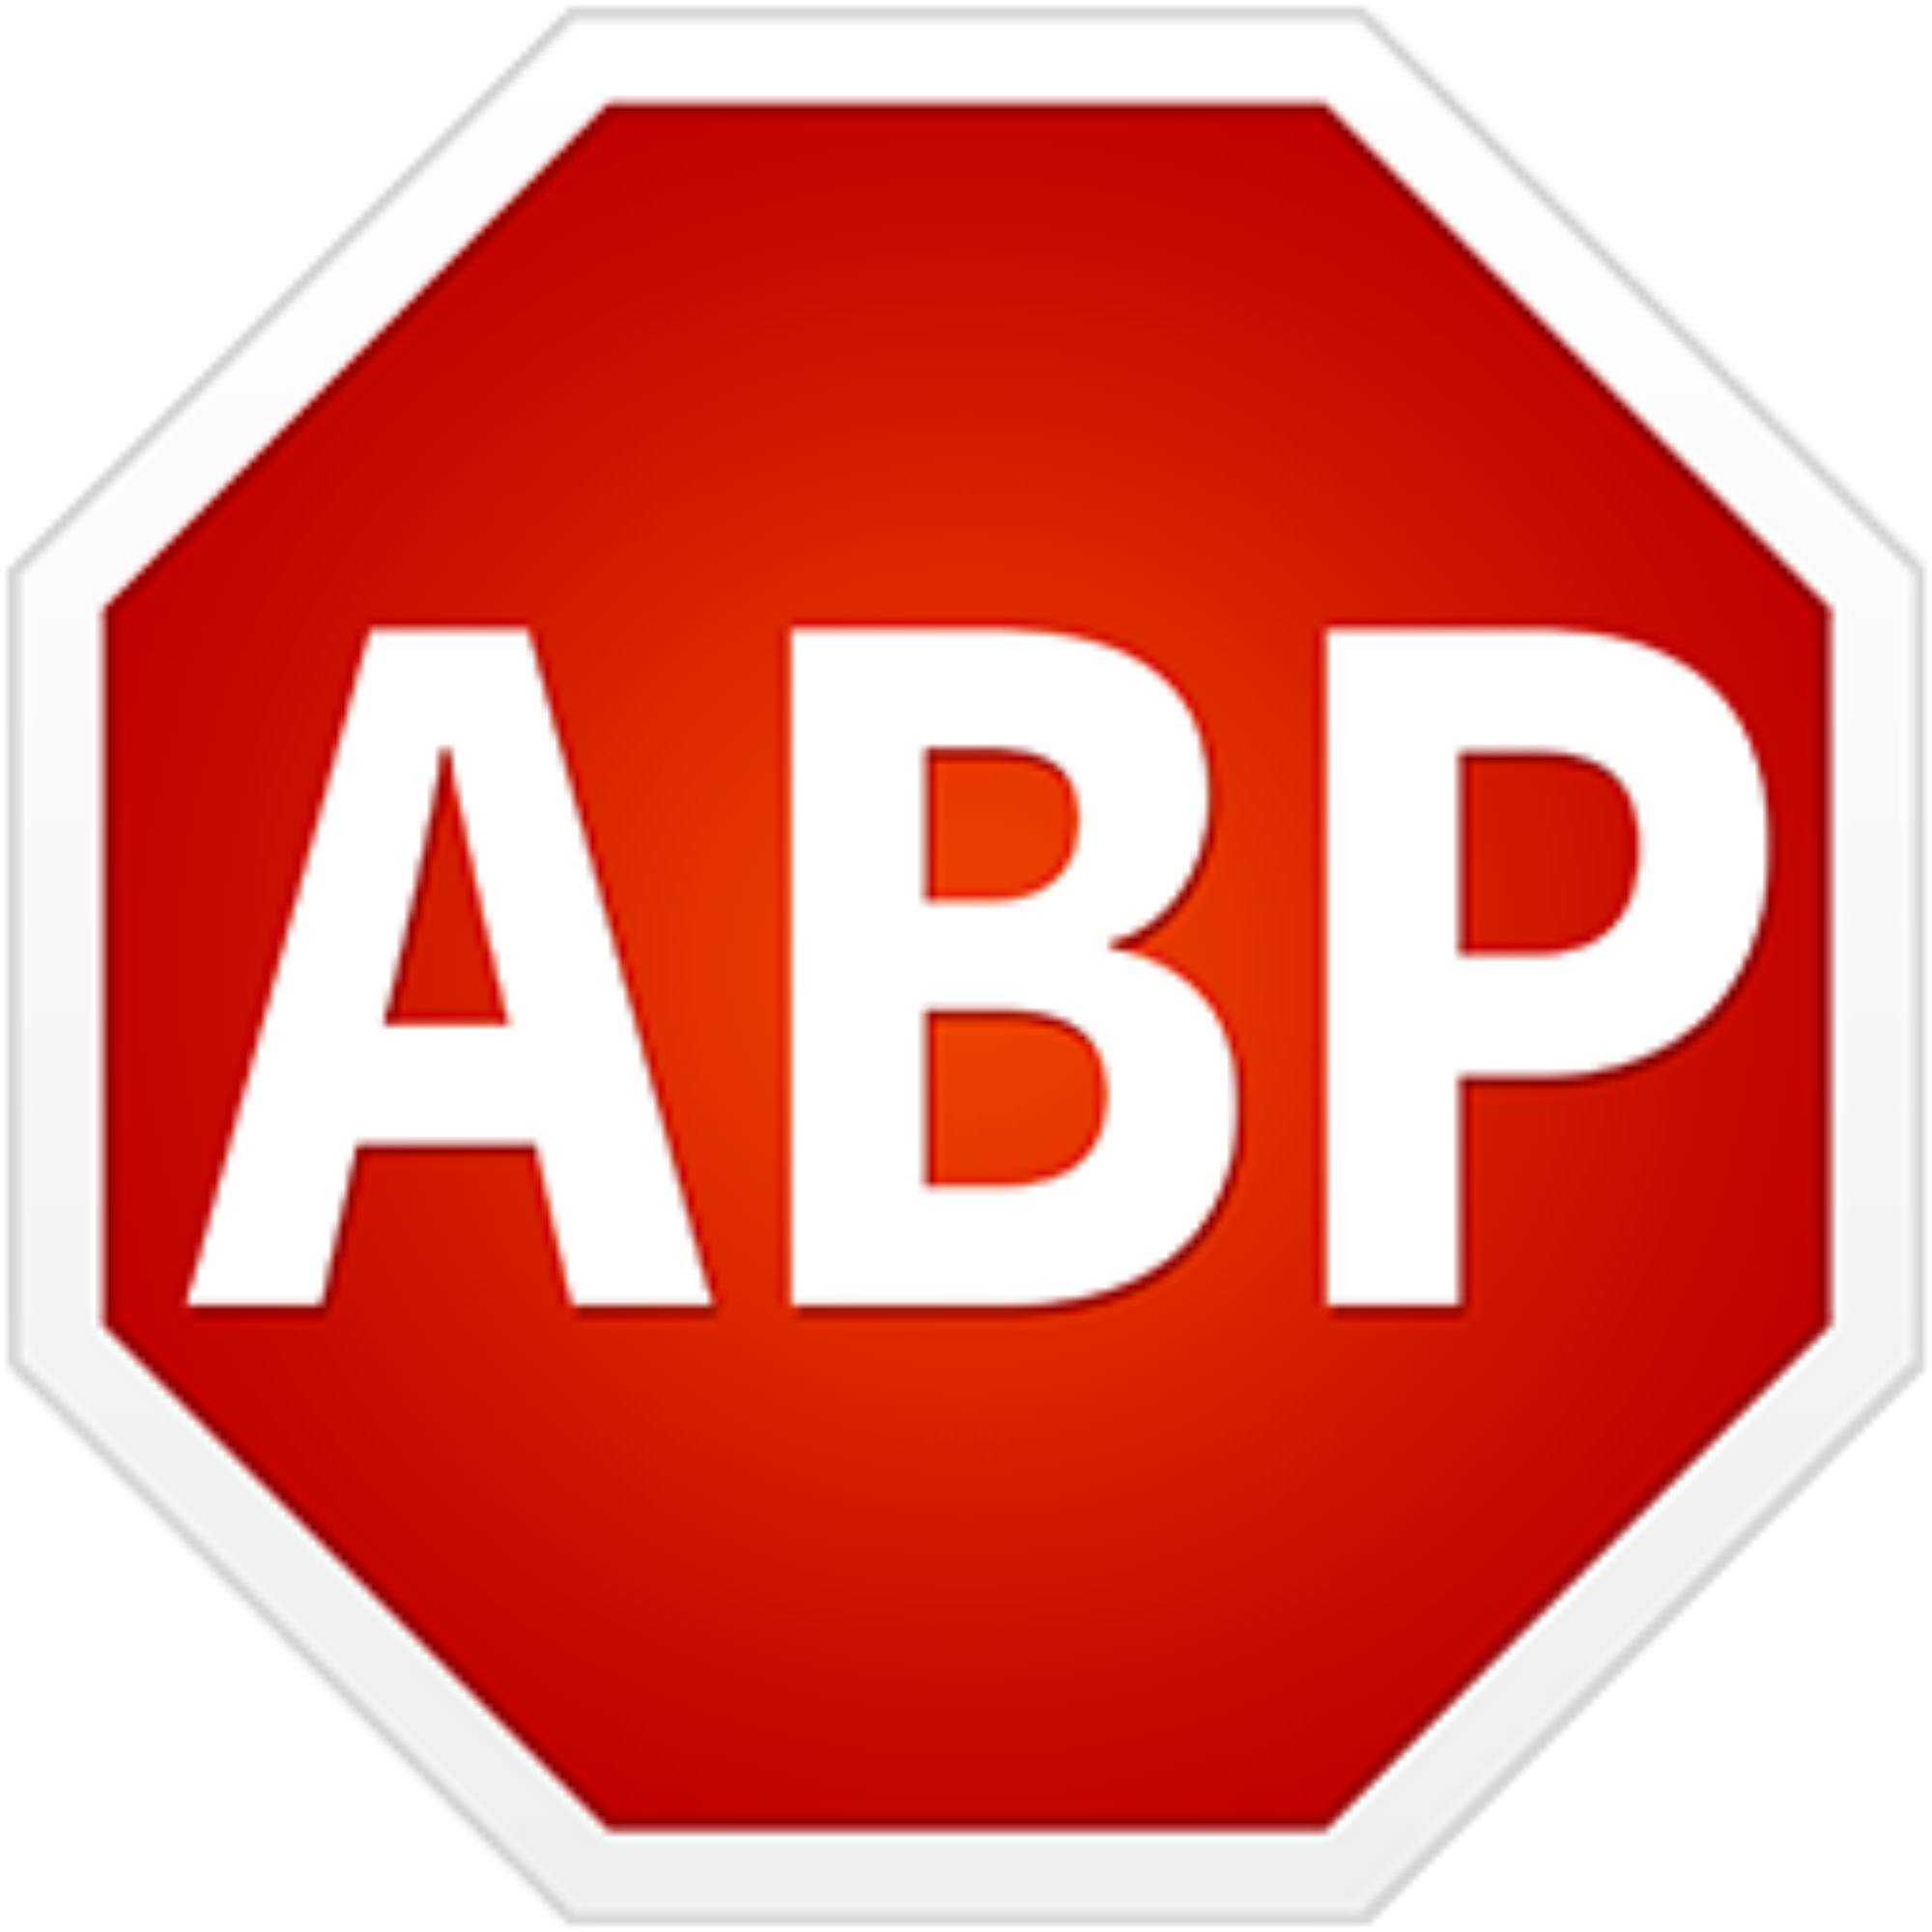 Advertisement clipart status update Clip Ad Stop Ad Clipart